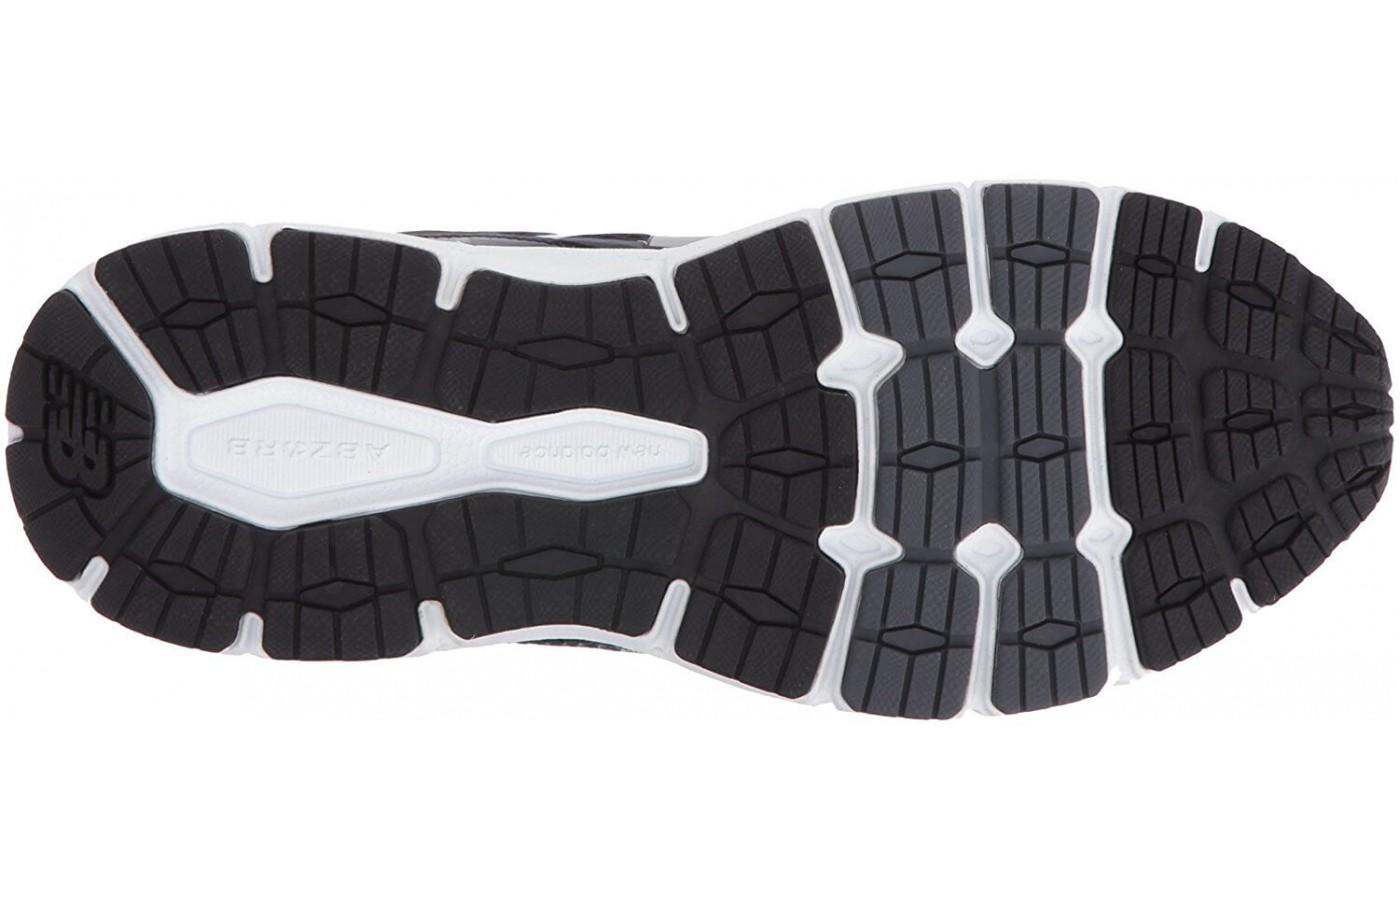 The rubber outsole provides decent traction on roads and light trails